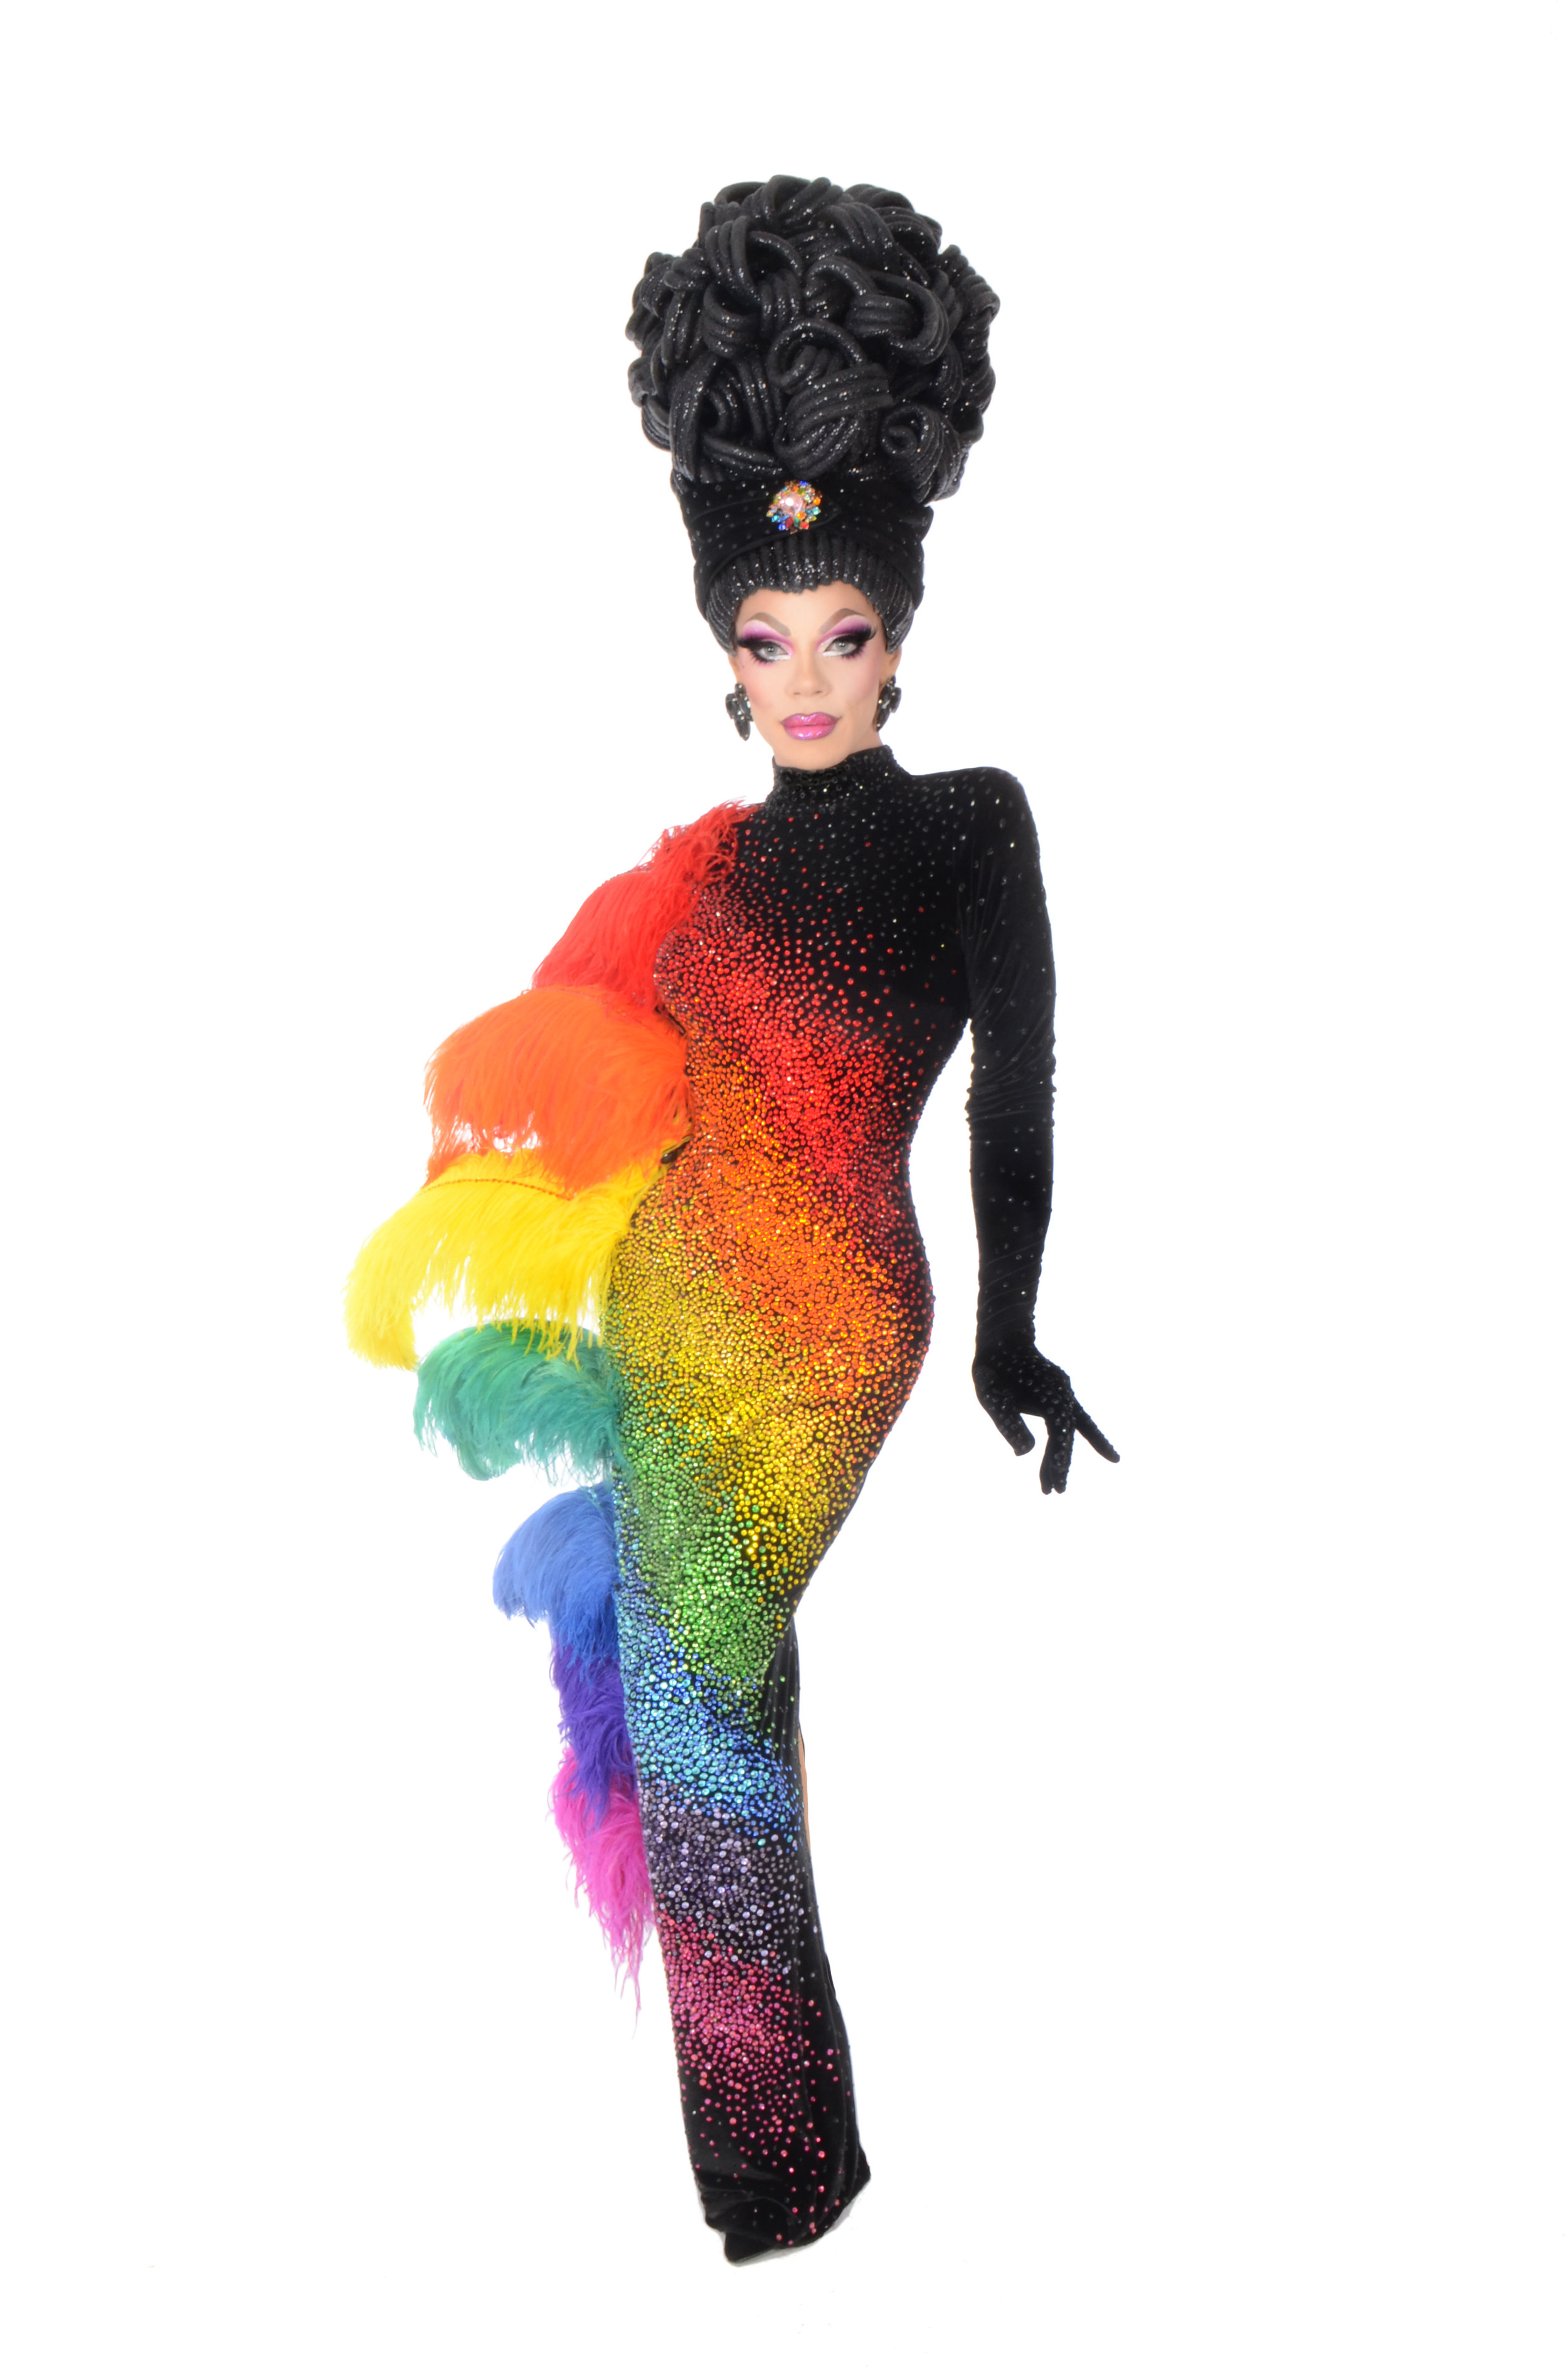 Art_Simone_Melbourne_Drag_Queen_Hire_Appearance_Melbourne_Victoria_Australia_Melb_Makeover_Transformation_Priscilla_Queen_of_the_desert_the_musical_Makeover_RuPaul_AAMI_INSURANCE